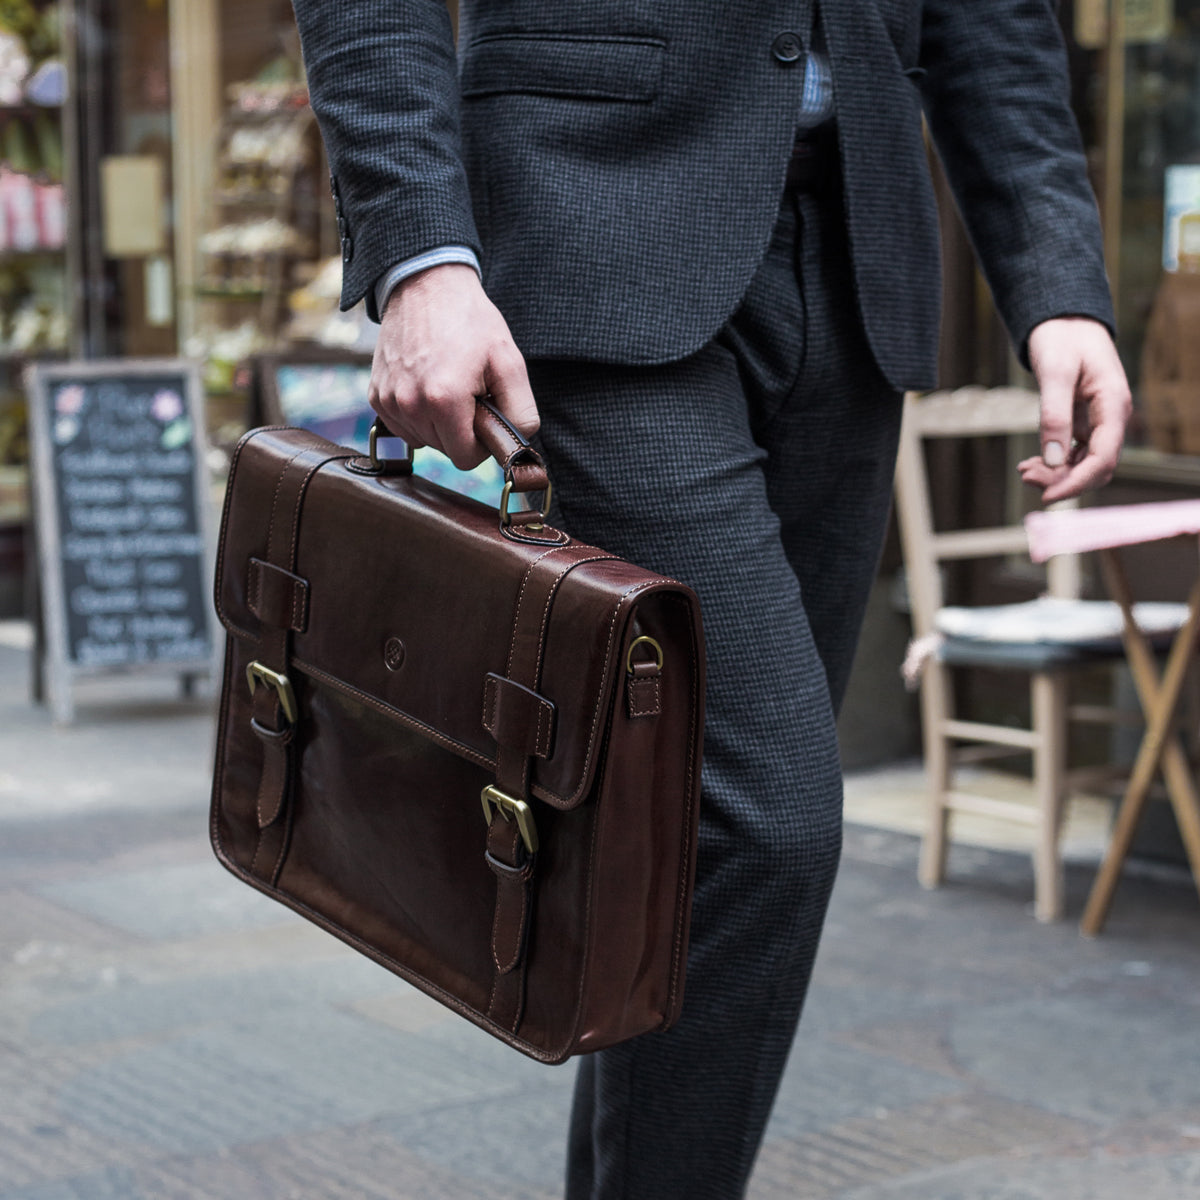 Image 6 of the 'Micheli' Black Veg-Tanned Leather Backpack Briefcase